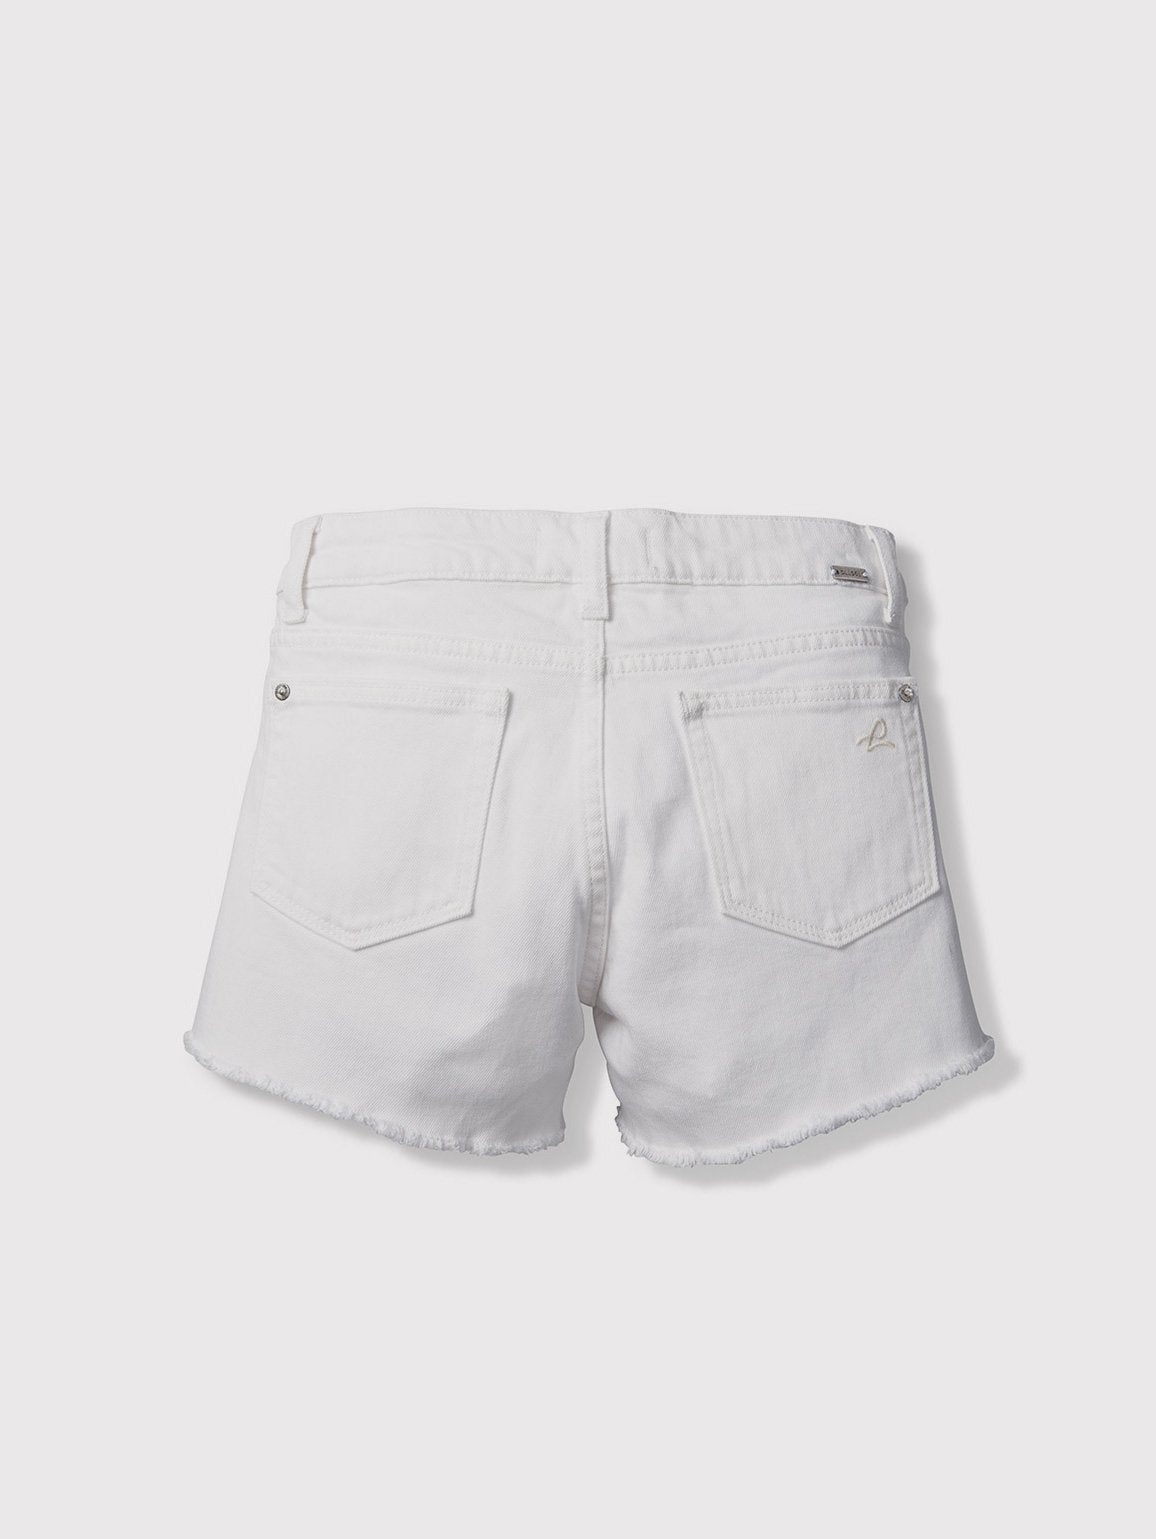 Girls - White Denim Shorts - Lucy/G Short Snowcap - DL1961